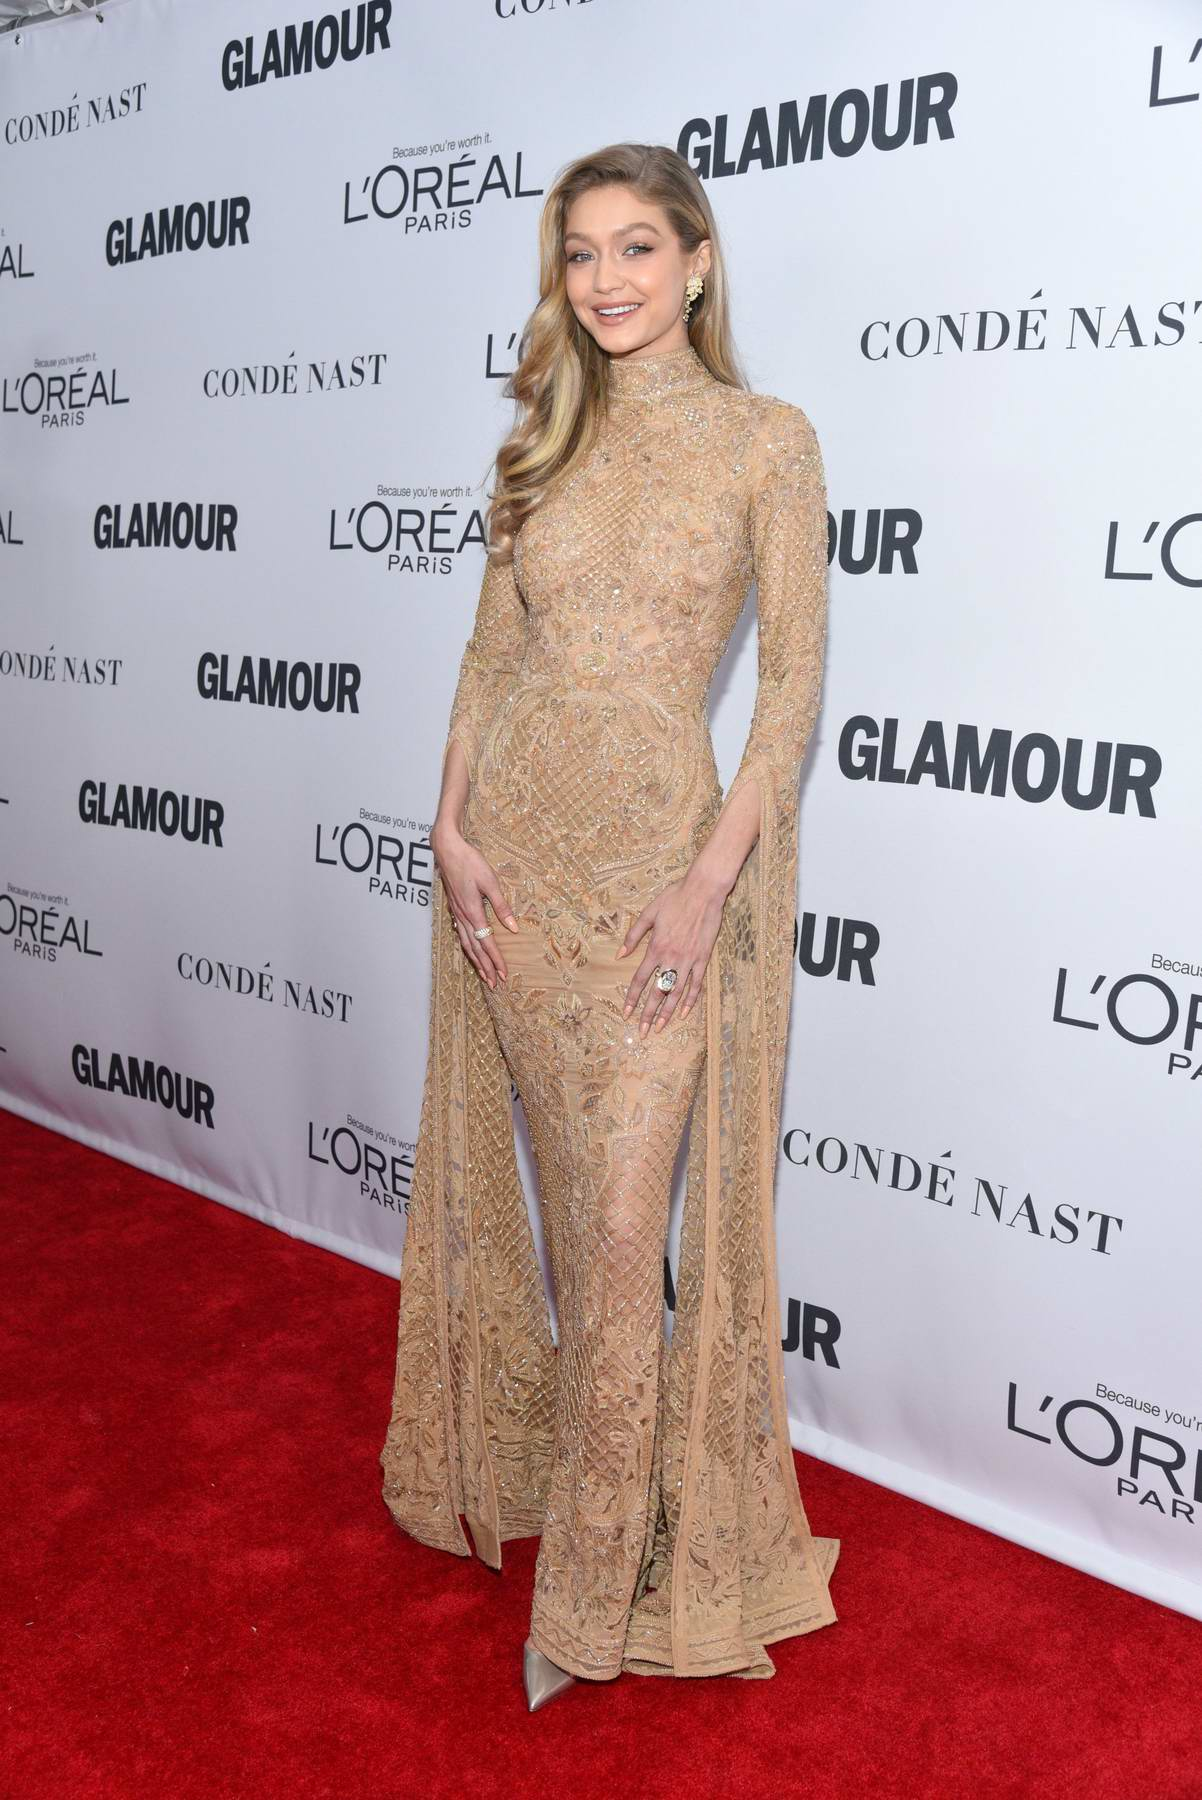 Gigi Hadid at the Glamour Women Of The Year Awards in New York